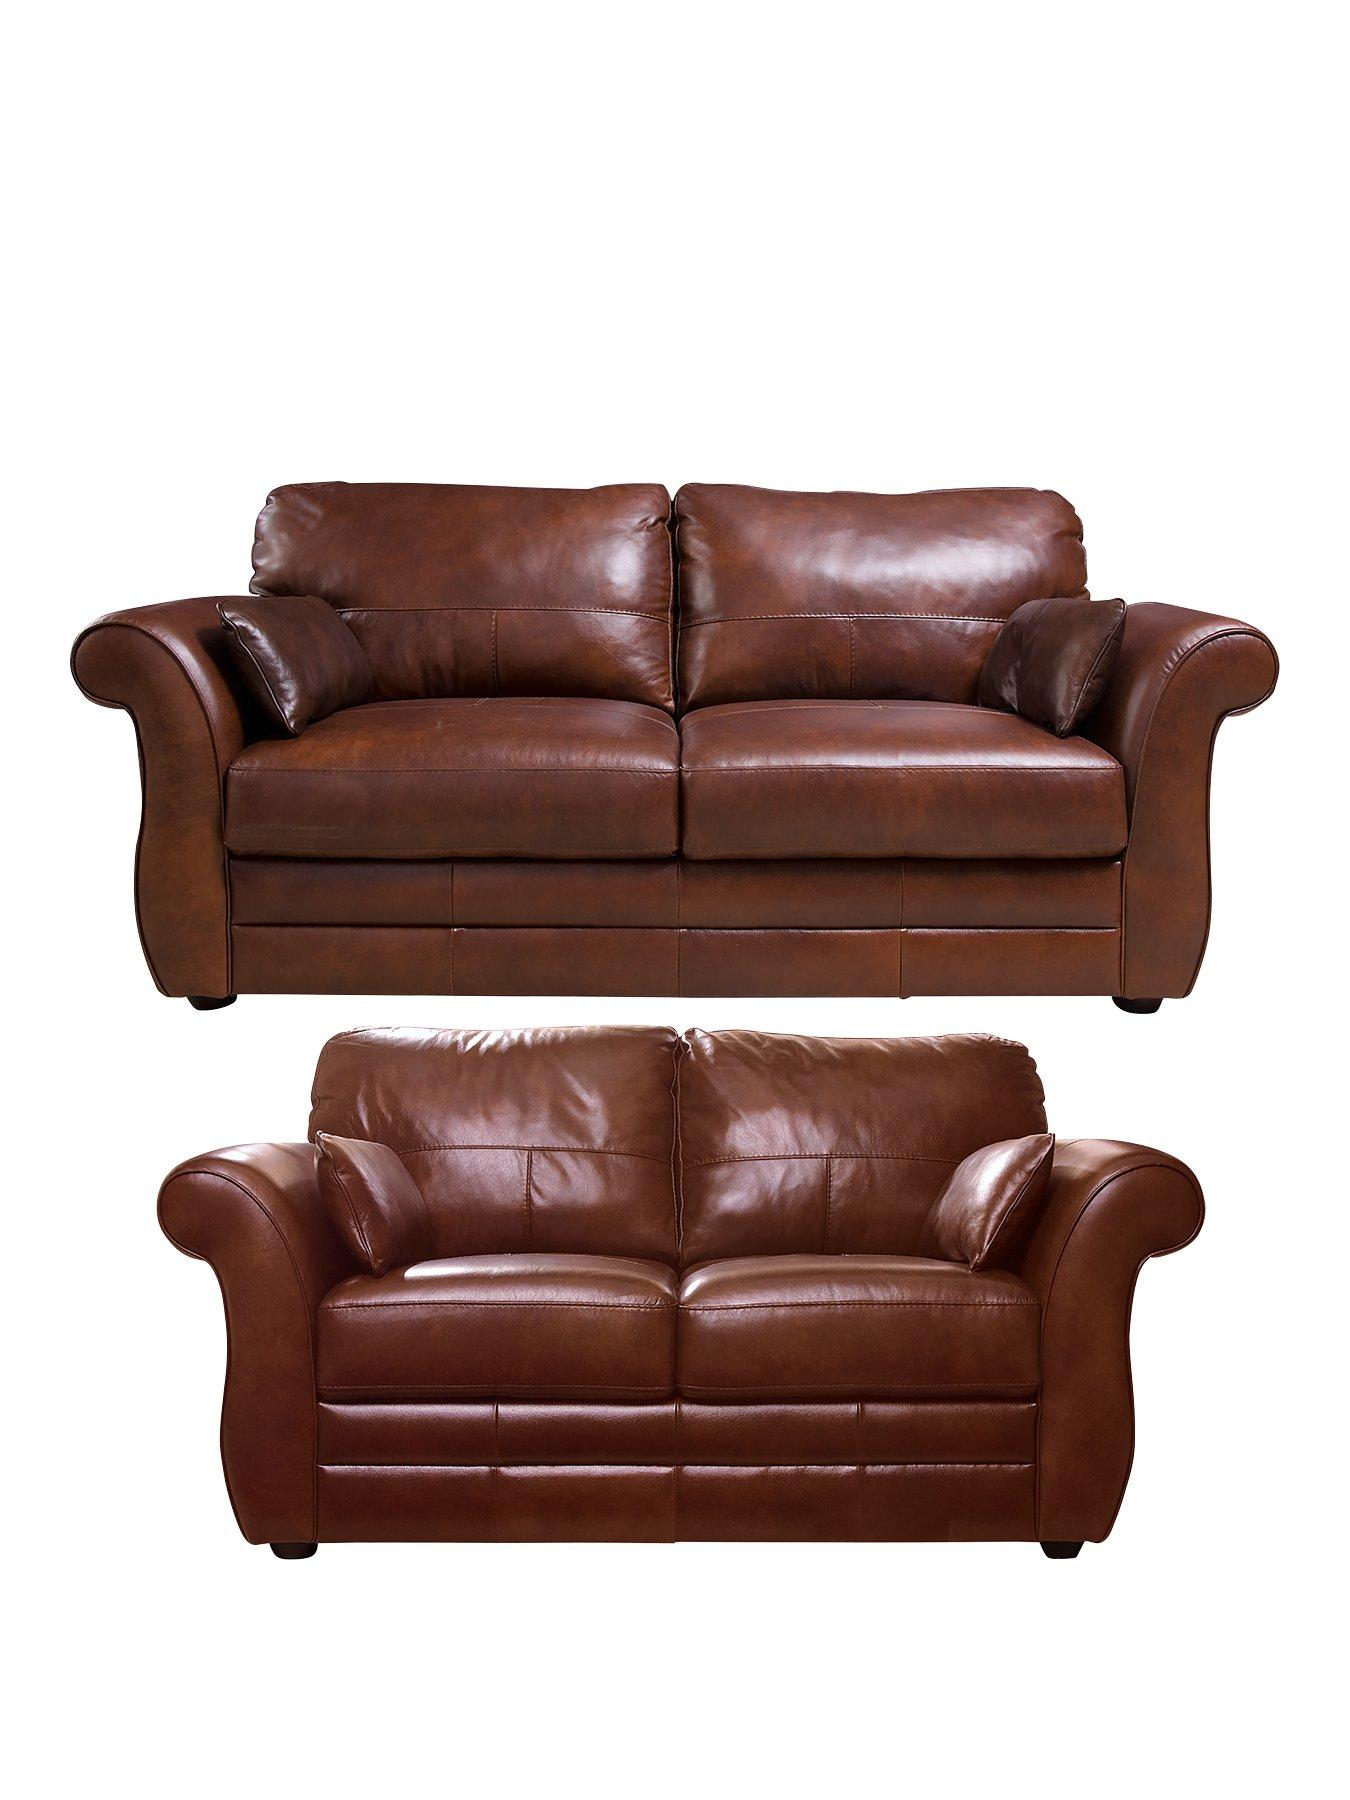 Vantage 3Seater plus 2Seater Leather Sofa Set buy and SAVE